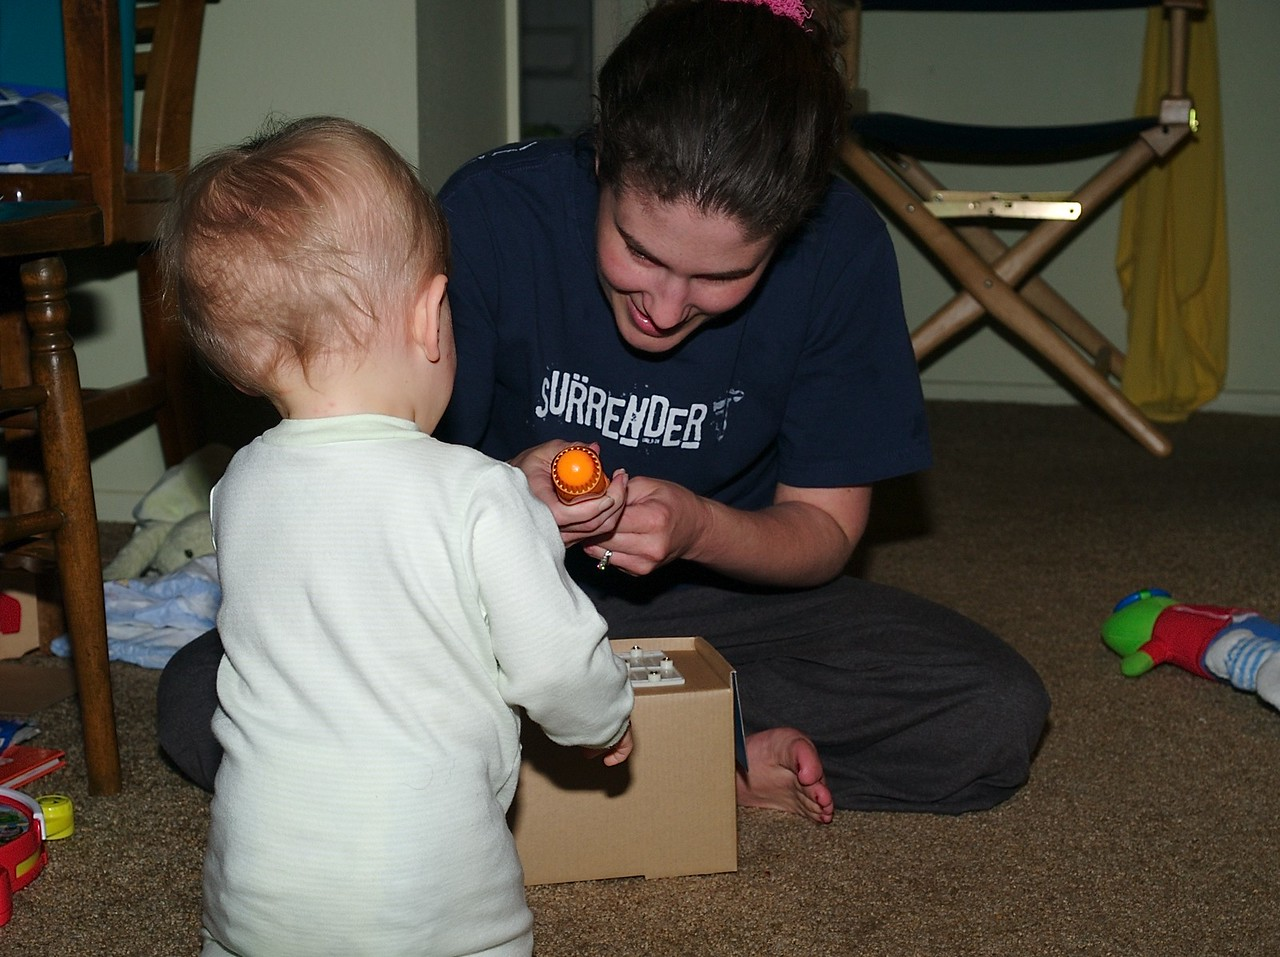 Mommy has to use a screwdriver to get the ambulance out of the box.